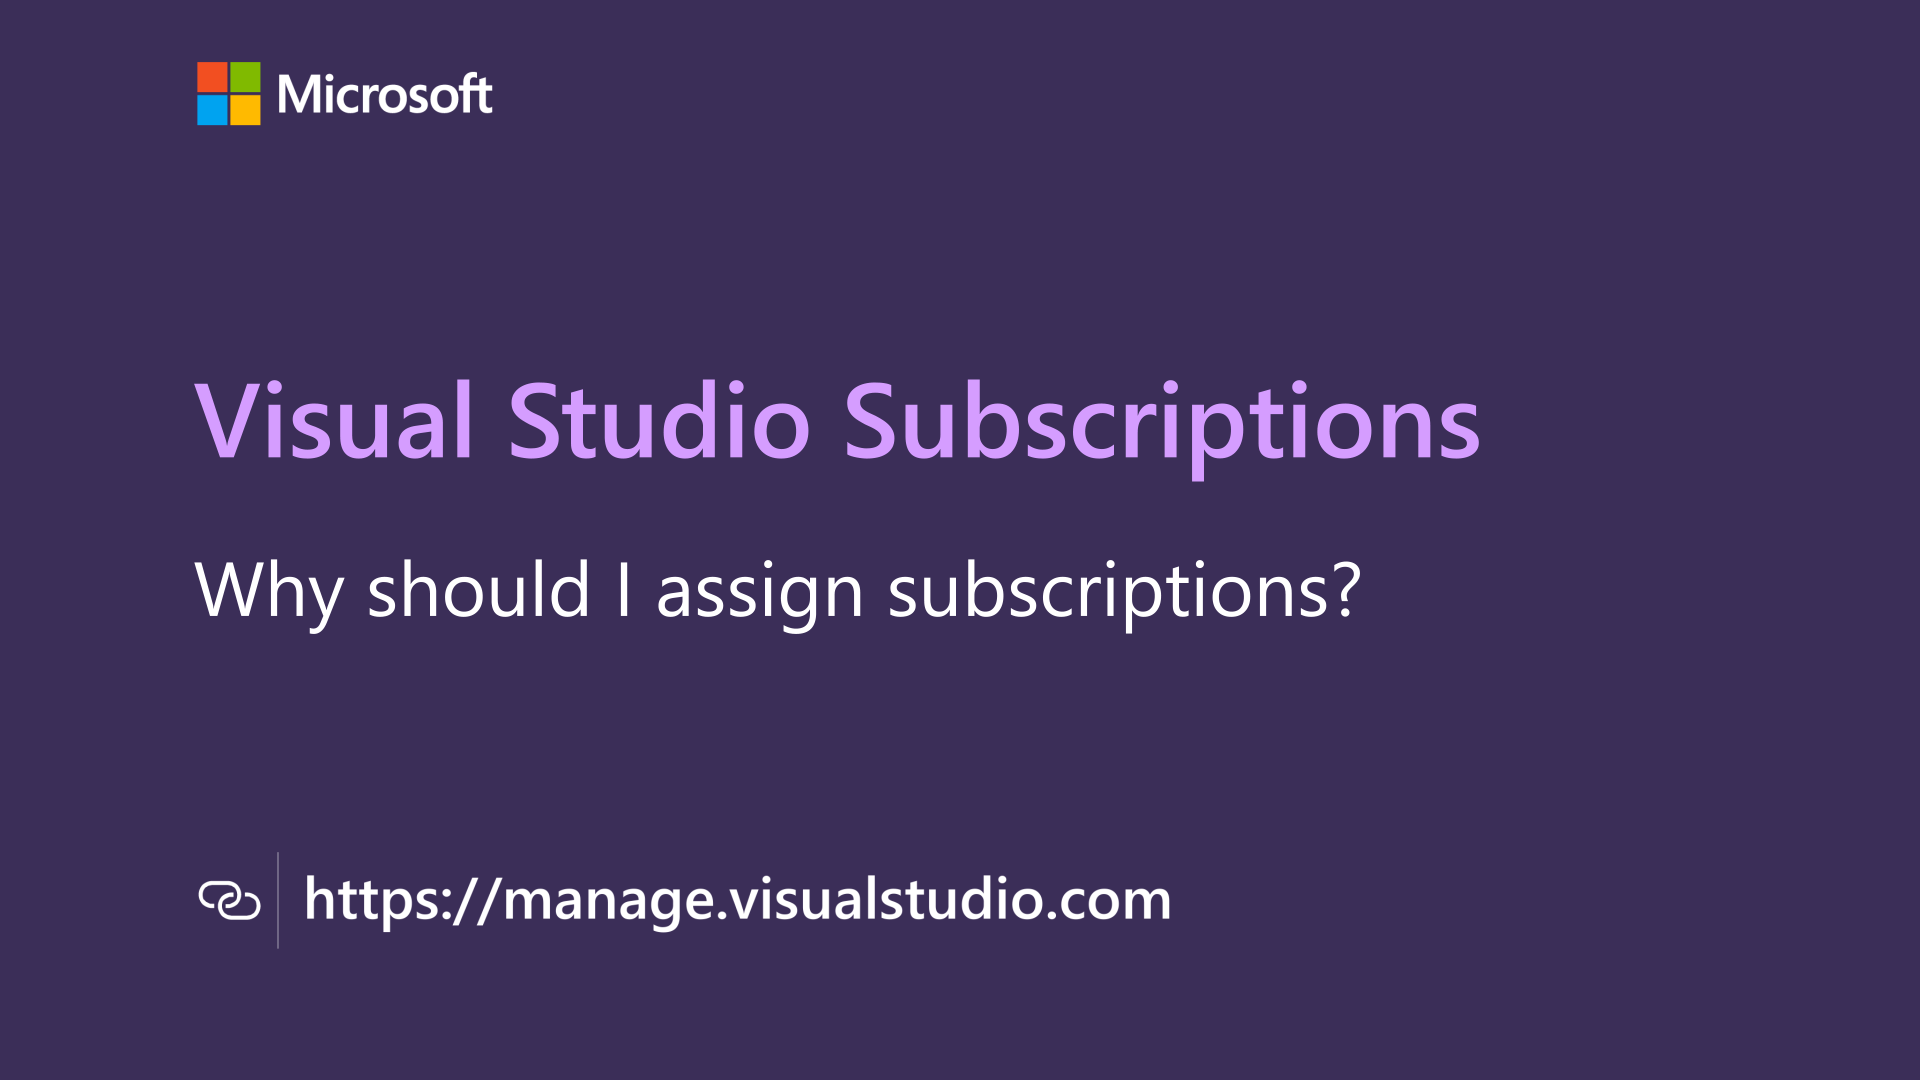 Thumbnail for Why should I assign Visual Studio subscriptions? video